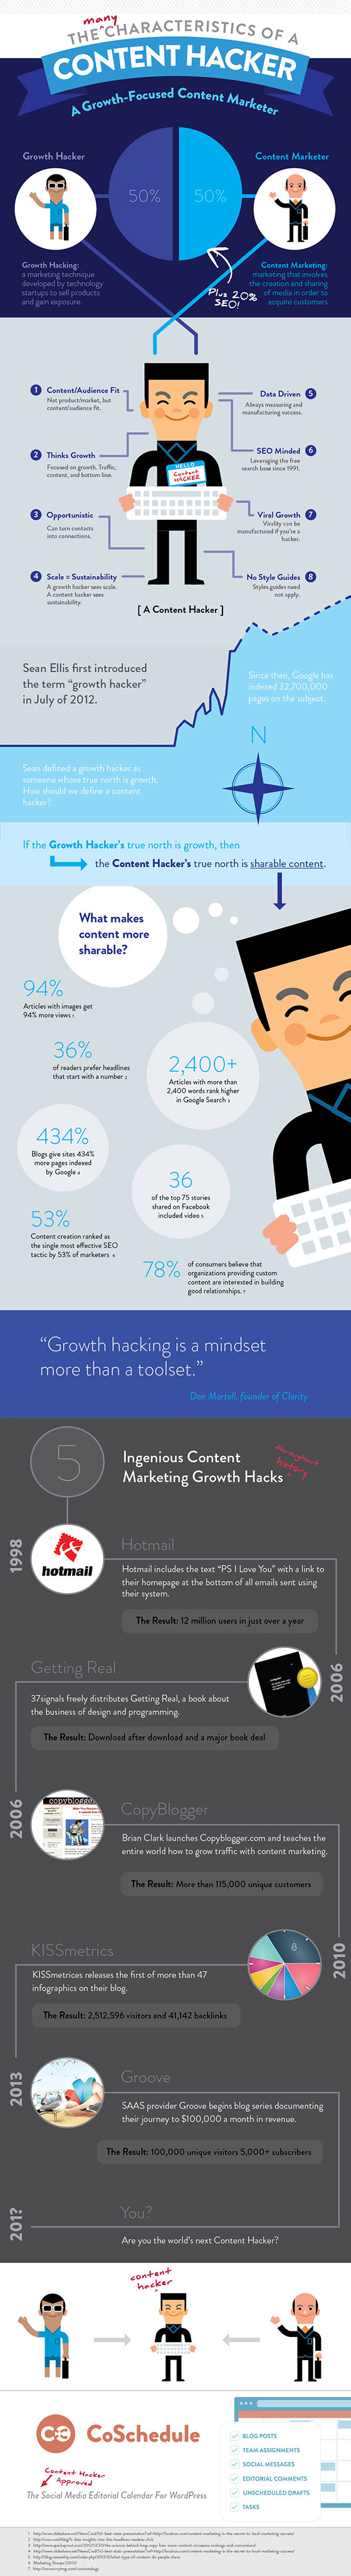 Content hacker infographic